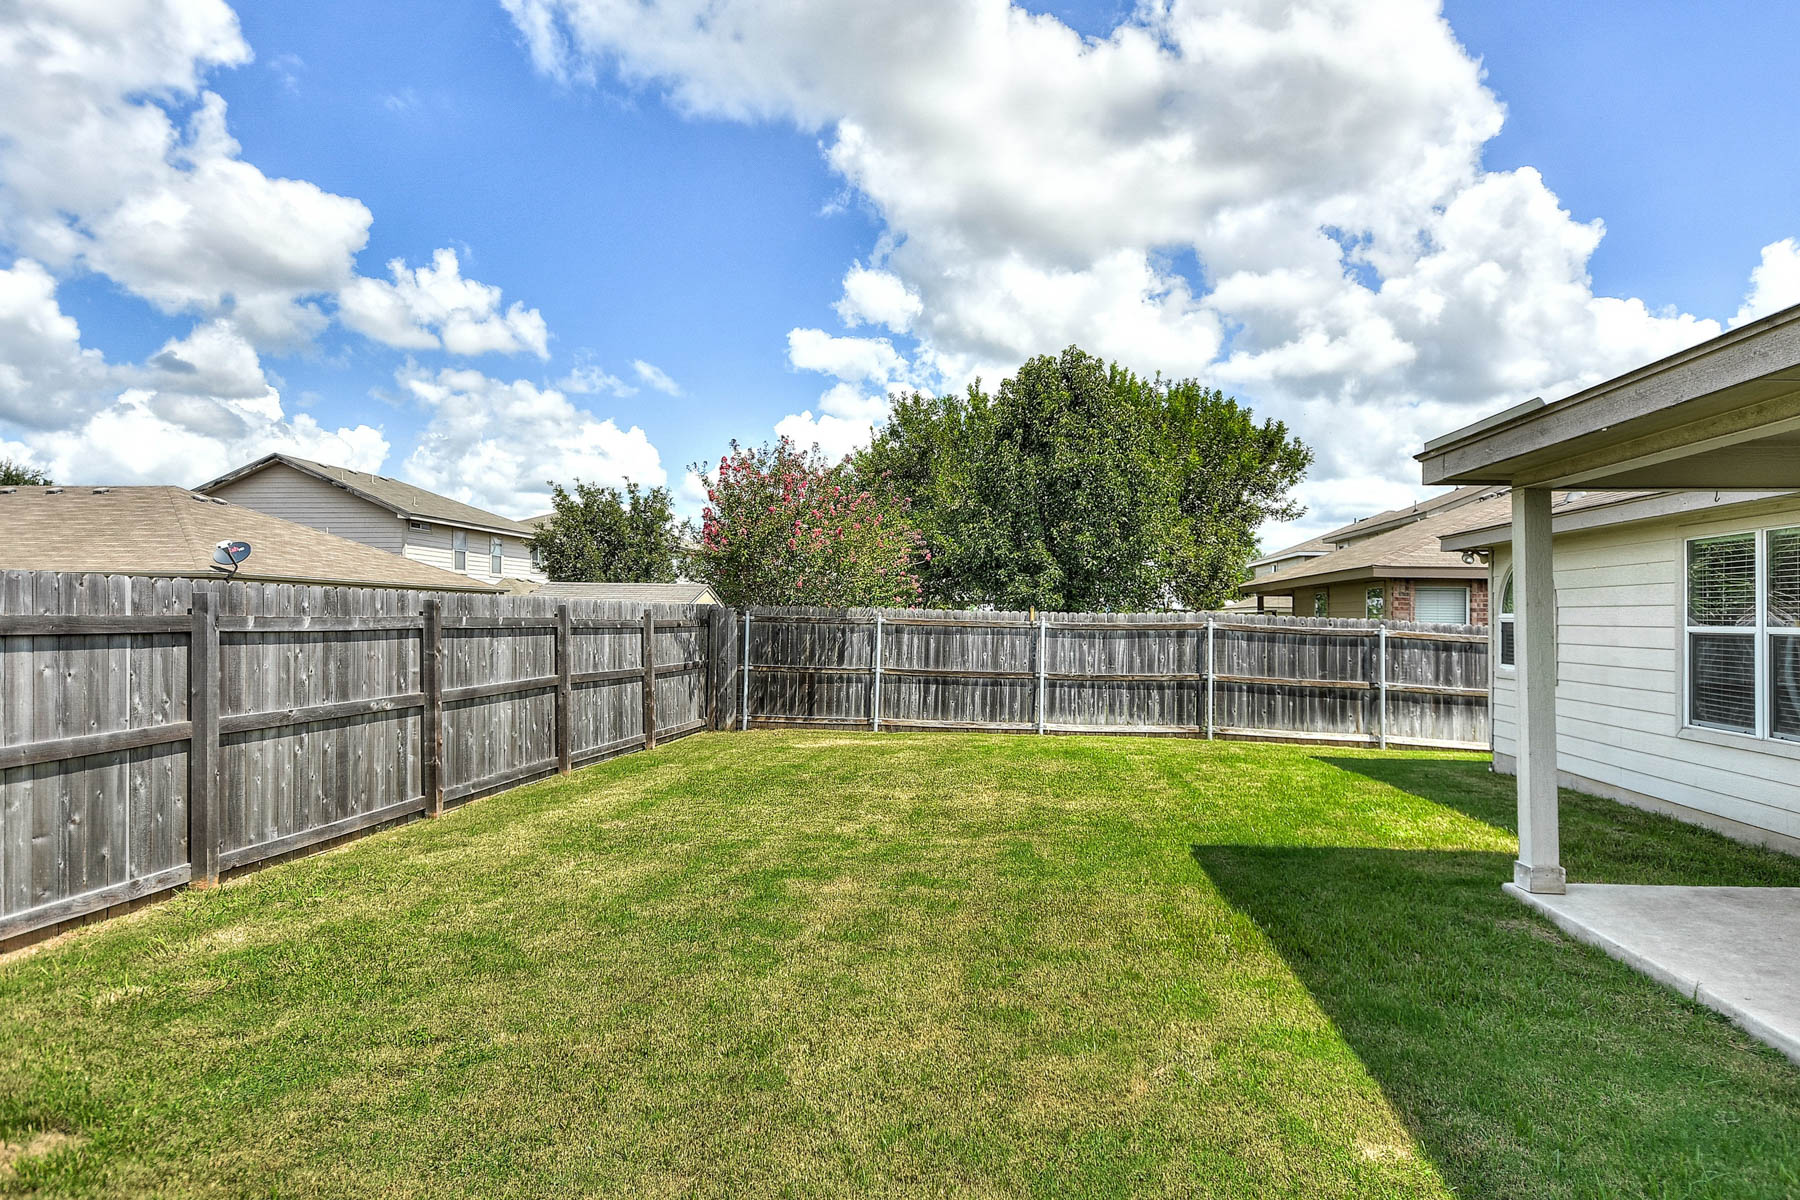 Additional photo for property listing at Well Maintained Home in Dove Crossing 232 Eagle Pass Dr New Braunfels, Texas 78130 Estados Unidos